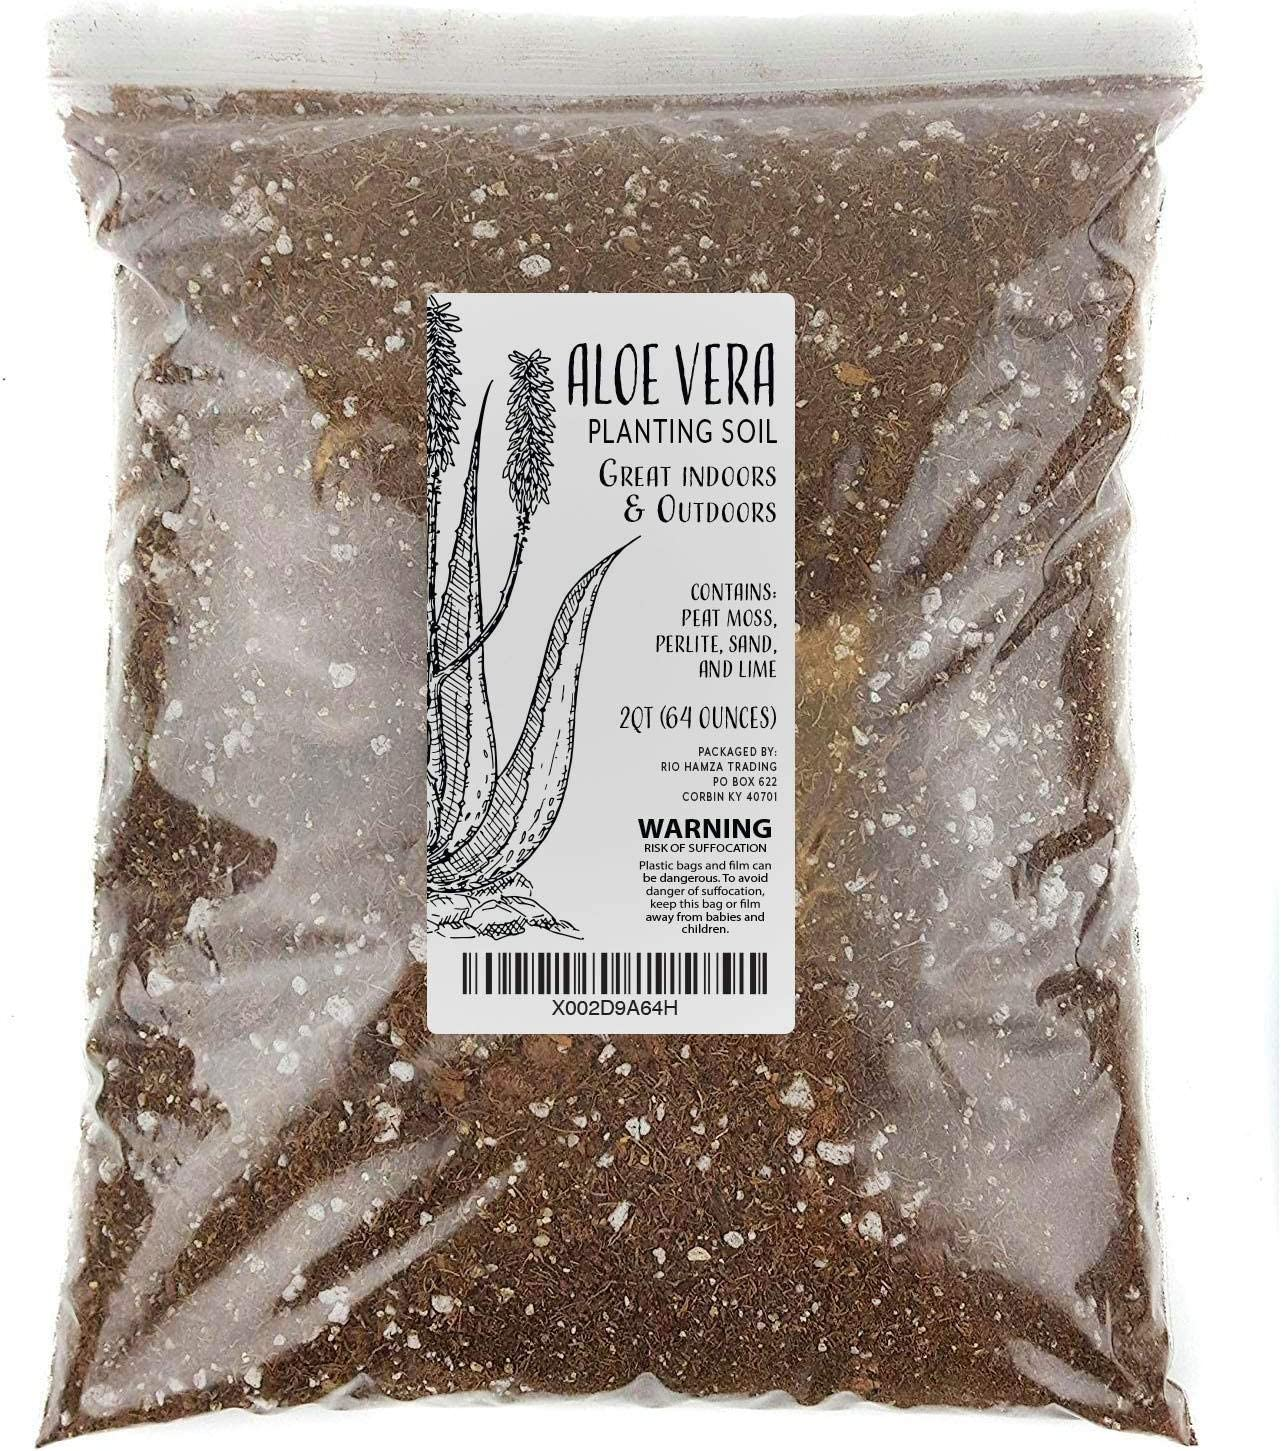 Aloe Vera Soil Blend, Hand Blended Aloe Vera and Succulent Soil Mix, Re-Pots 3-4 Small Plants or 1-2 Medium Plants, All Natural (2qts)